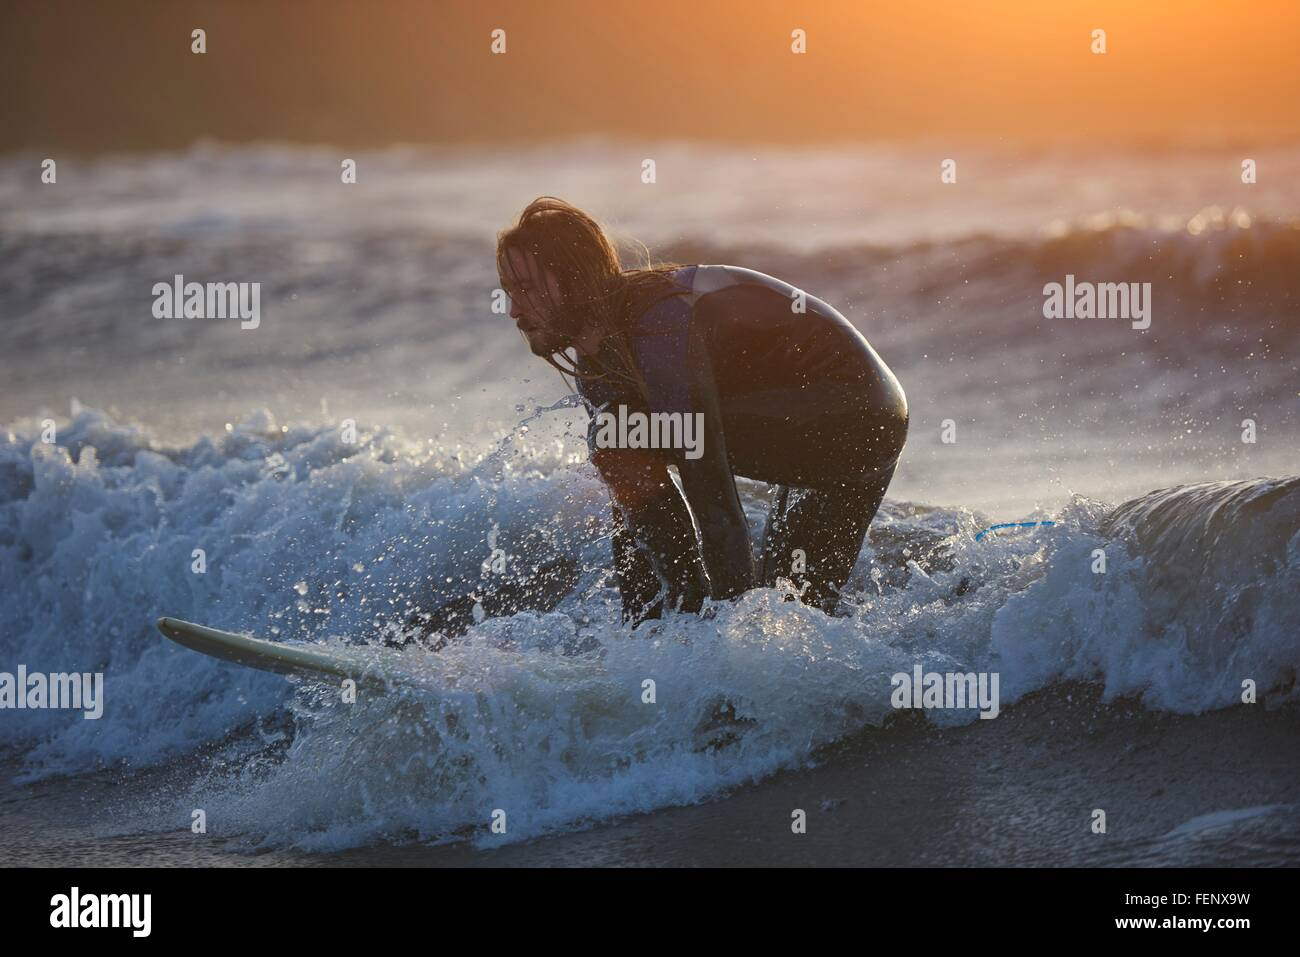 Young male surfer surfing on ocean wave, Devon, England, UK - Stock Image